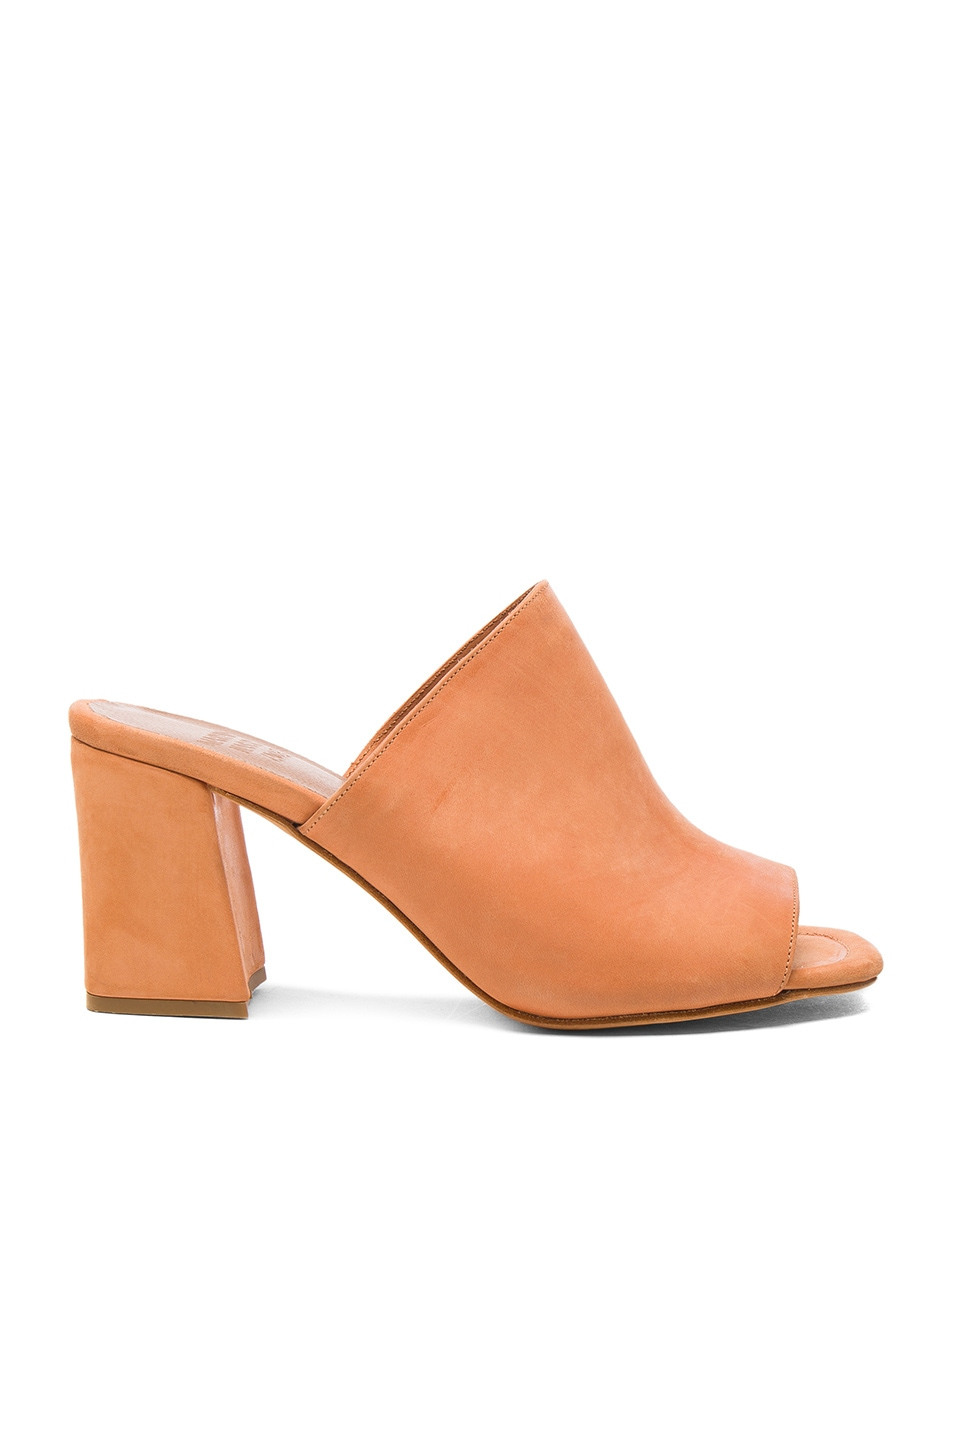 Image 1 of Maryam Nassir Zadeh Leather Penelope Mules in Natural Calf